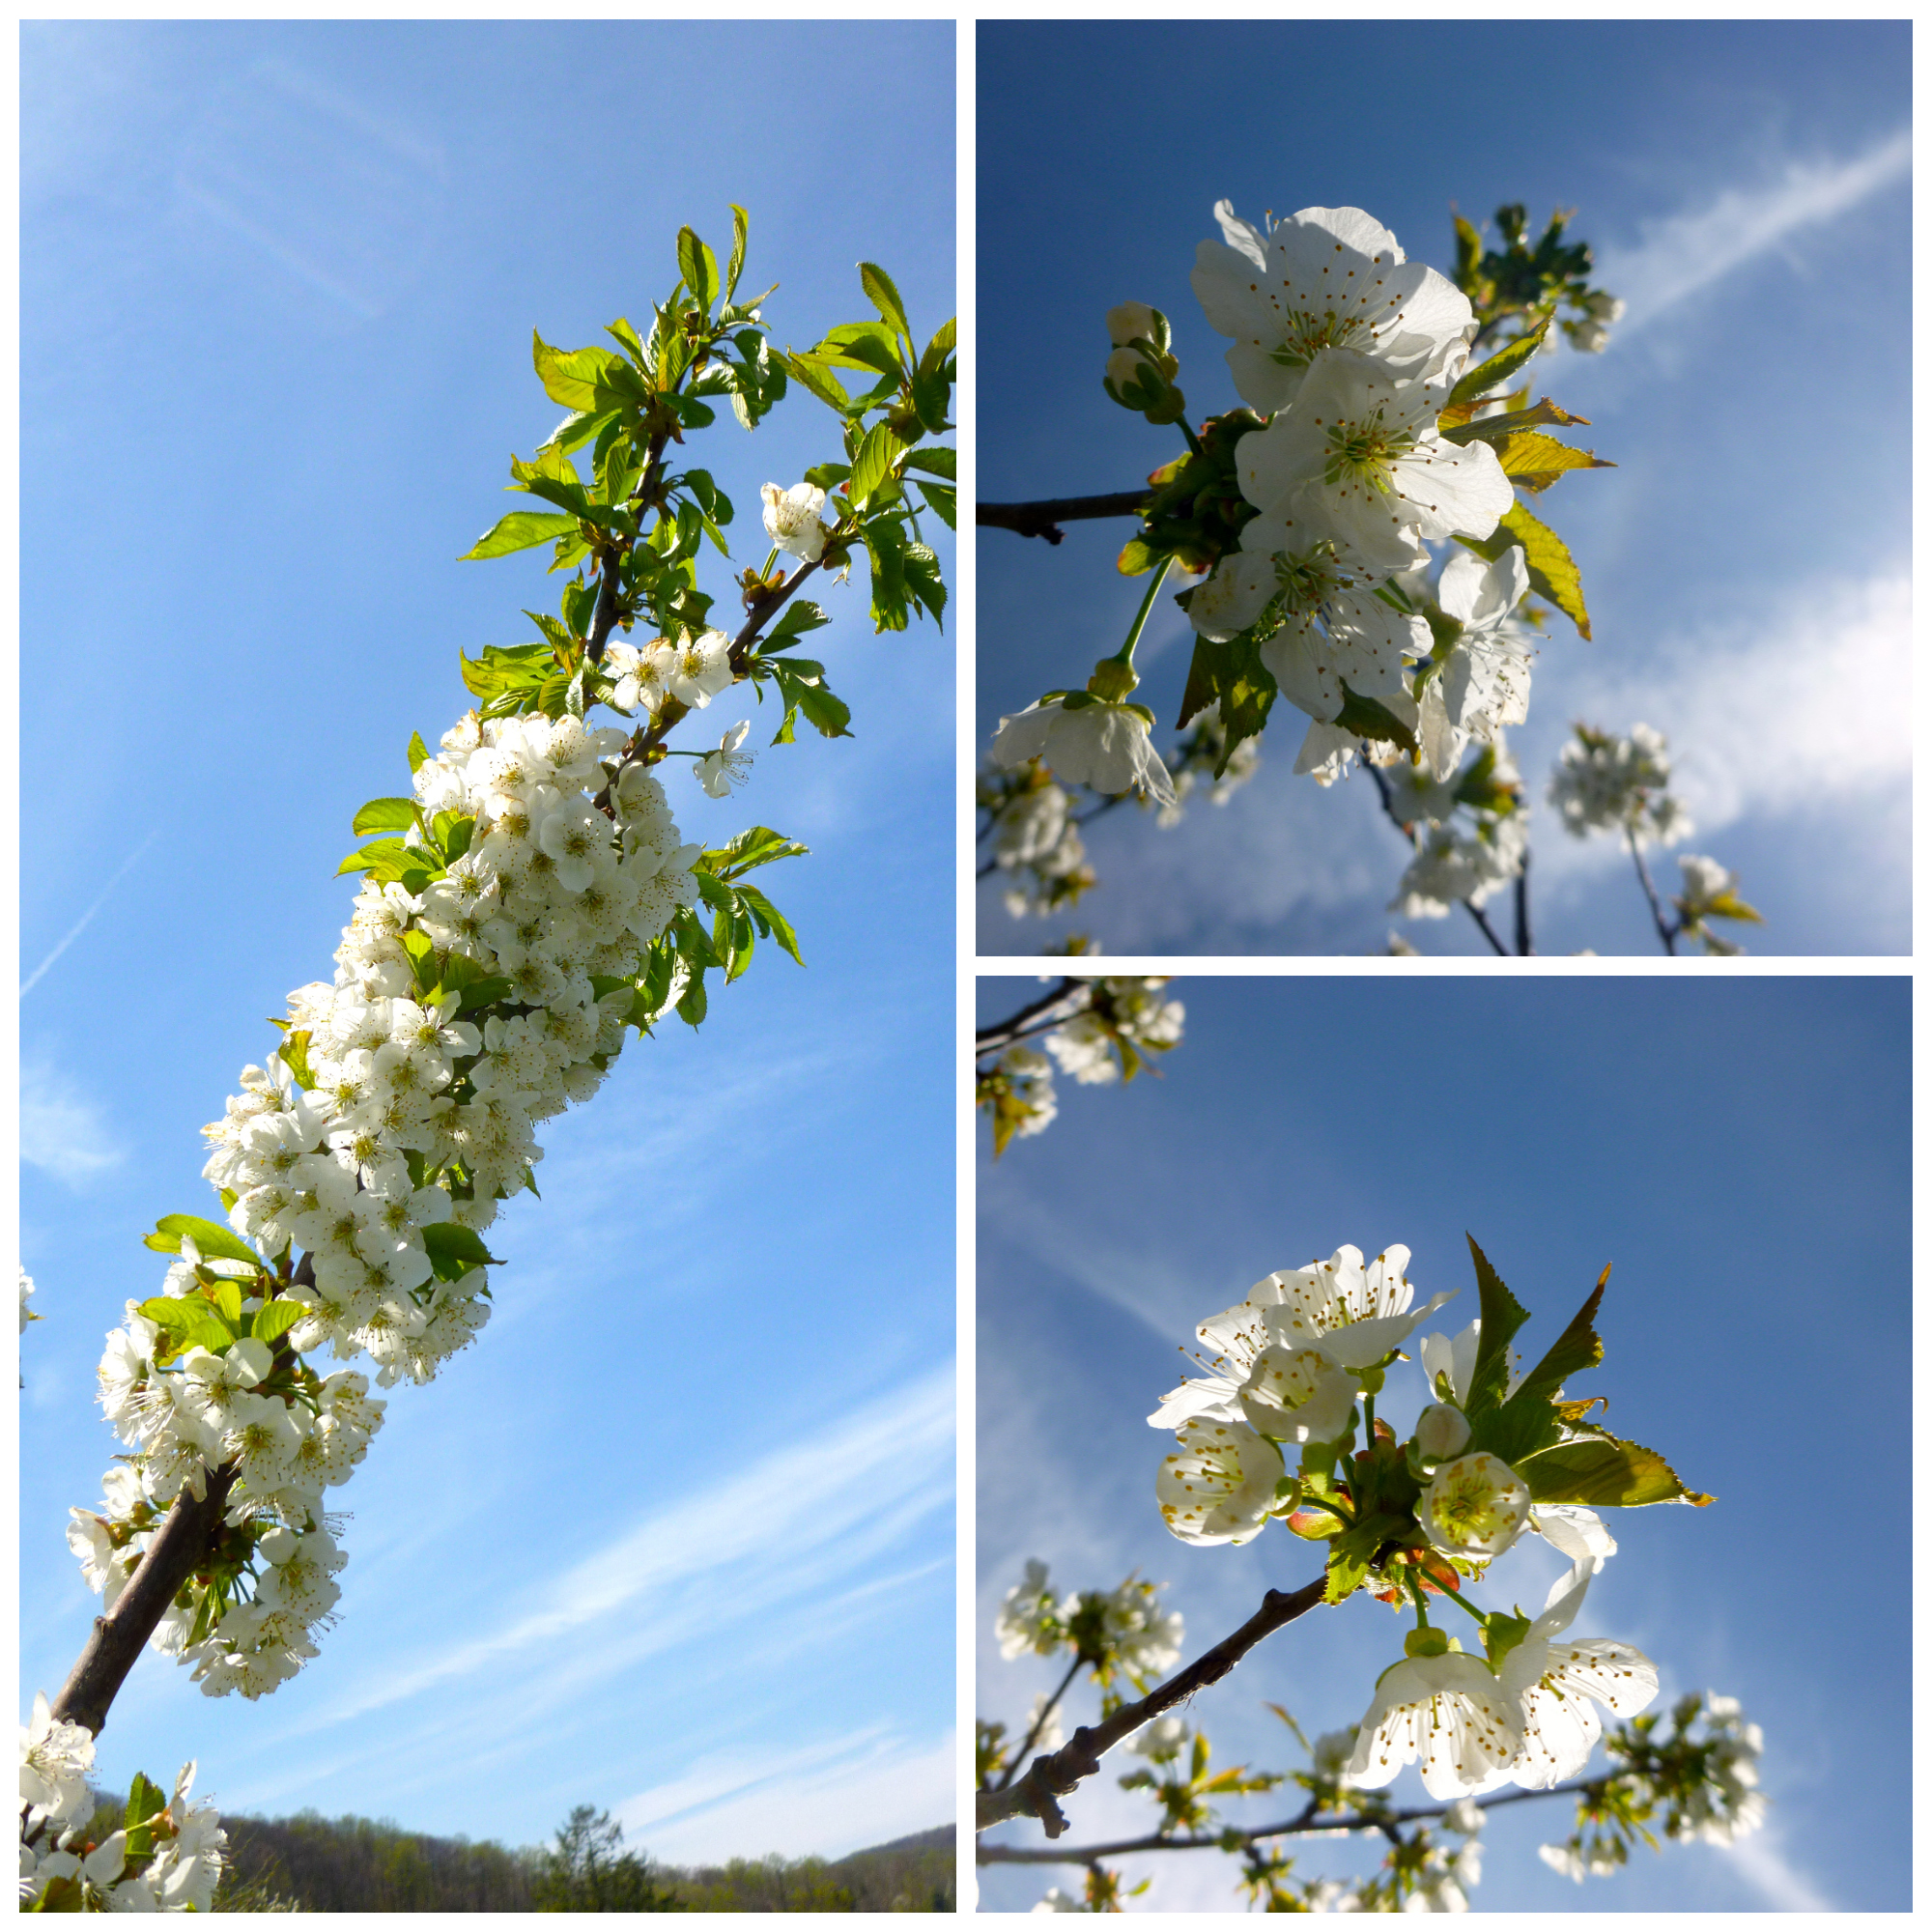 Cherries, plums and plumcot blossoms.